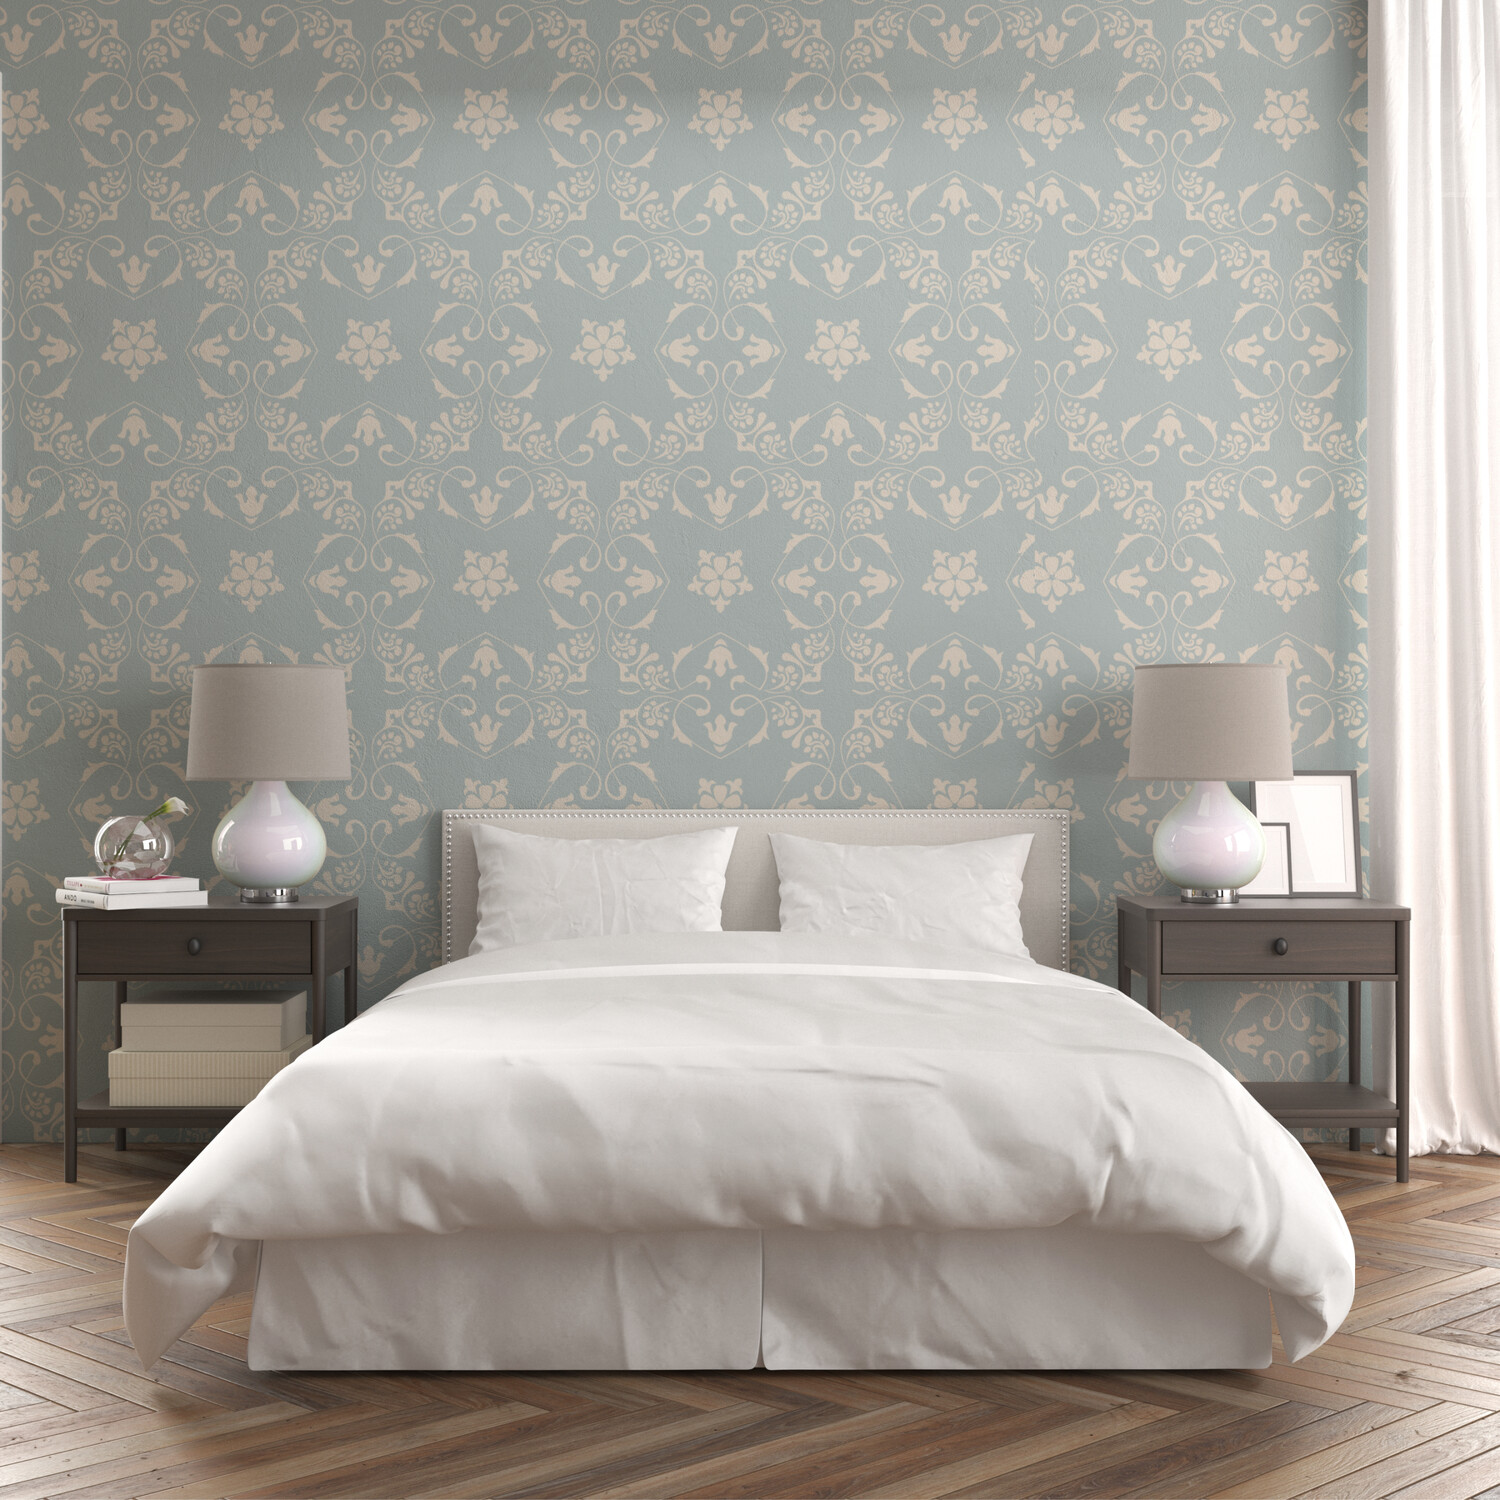 COUNTRY CHIC | Vinyl Wall Wrap for Any Room | Removable Vinyl Wallpaper